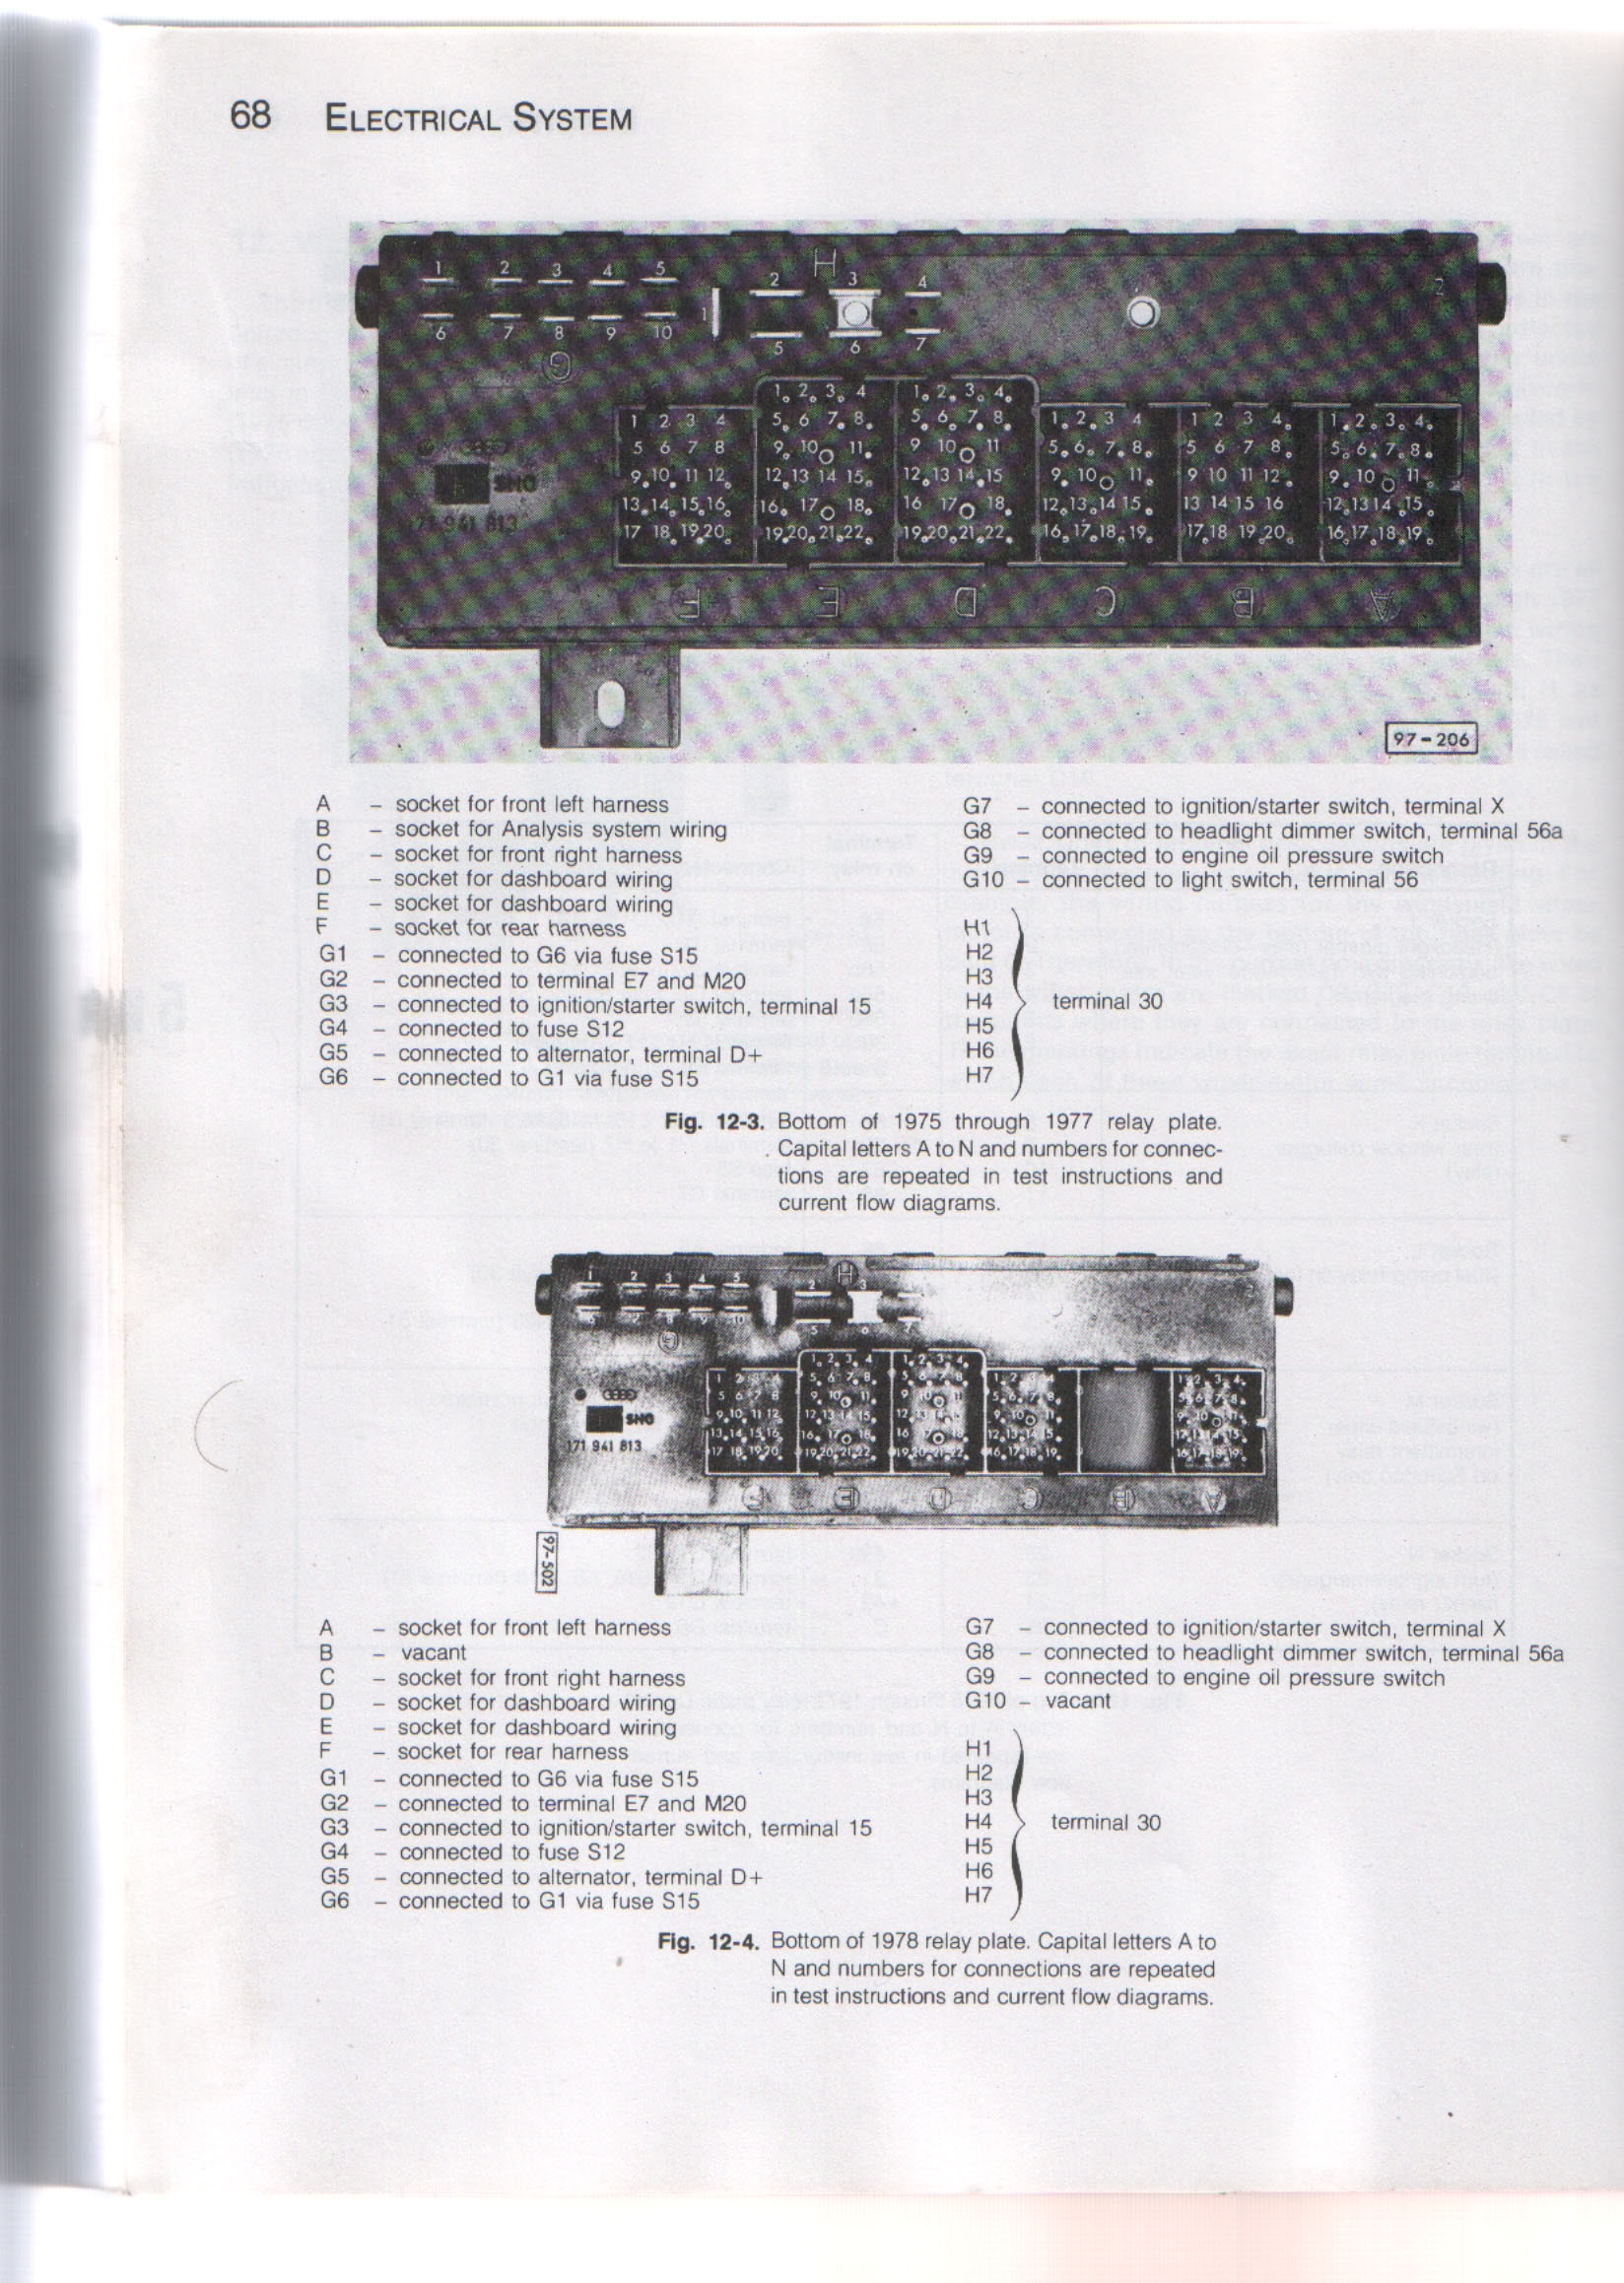 2009 vw rabbit fuse box diagram gAYbQTL 2007 vw rabbit fuse box diagram image details 1982 vw rabbit fuse box at panicattacktreatment.co